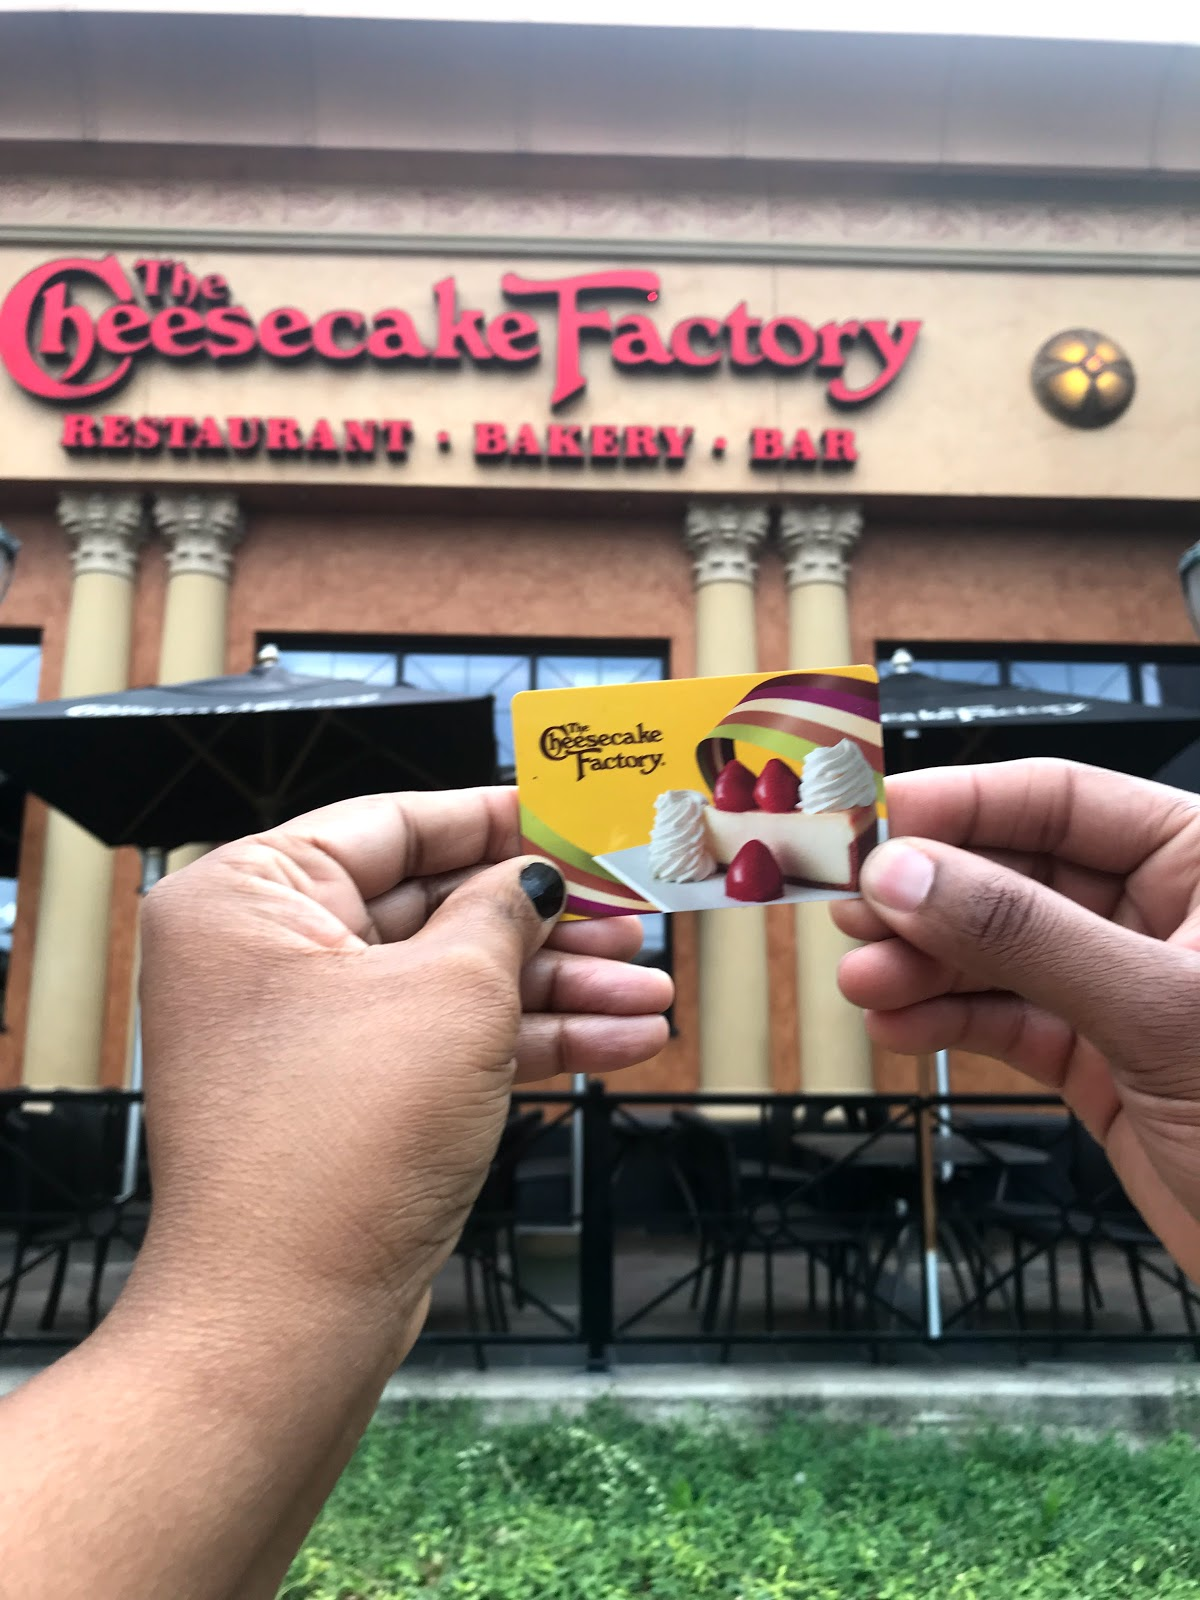 A few weeks ago we sent my mother-in-law a gift card for her birthday. Not knowing there was no Cheesecake Factory in her hometown city Shreveport. So, guess what that means? Yes, we did a switch out cash for the card.